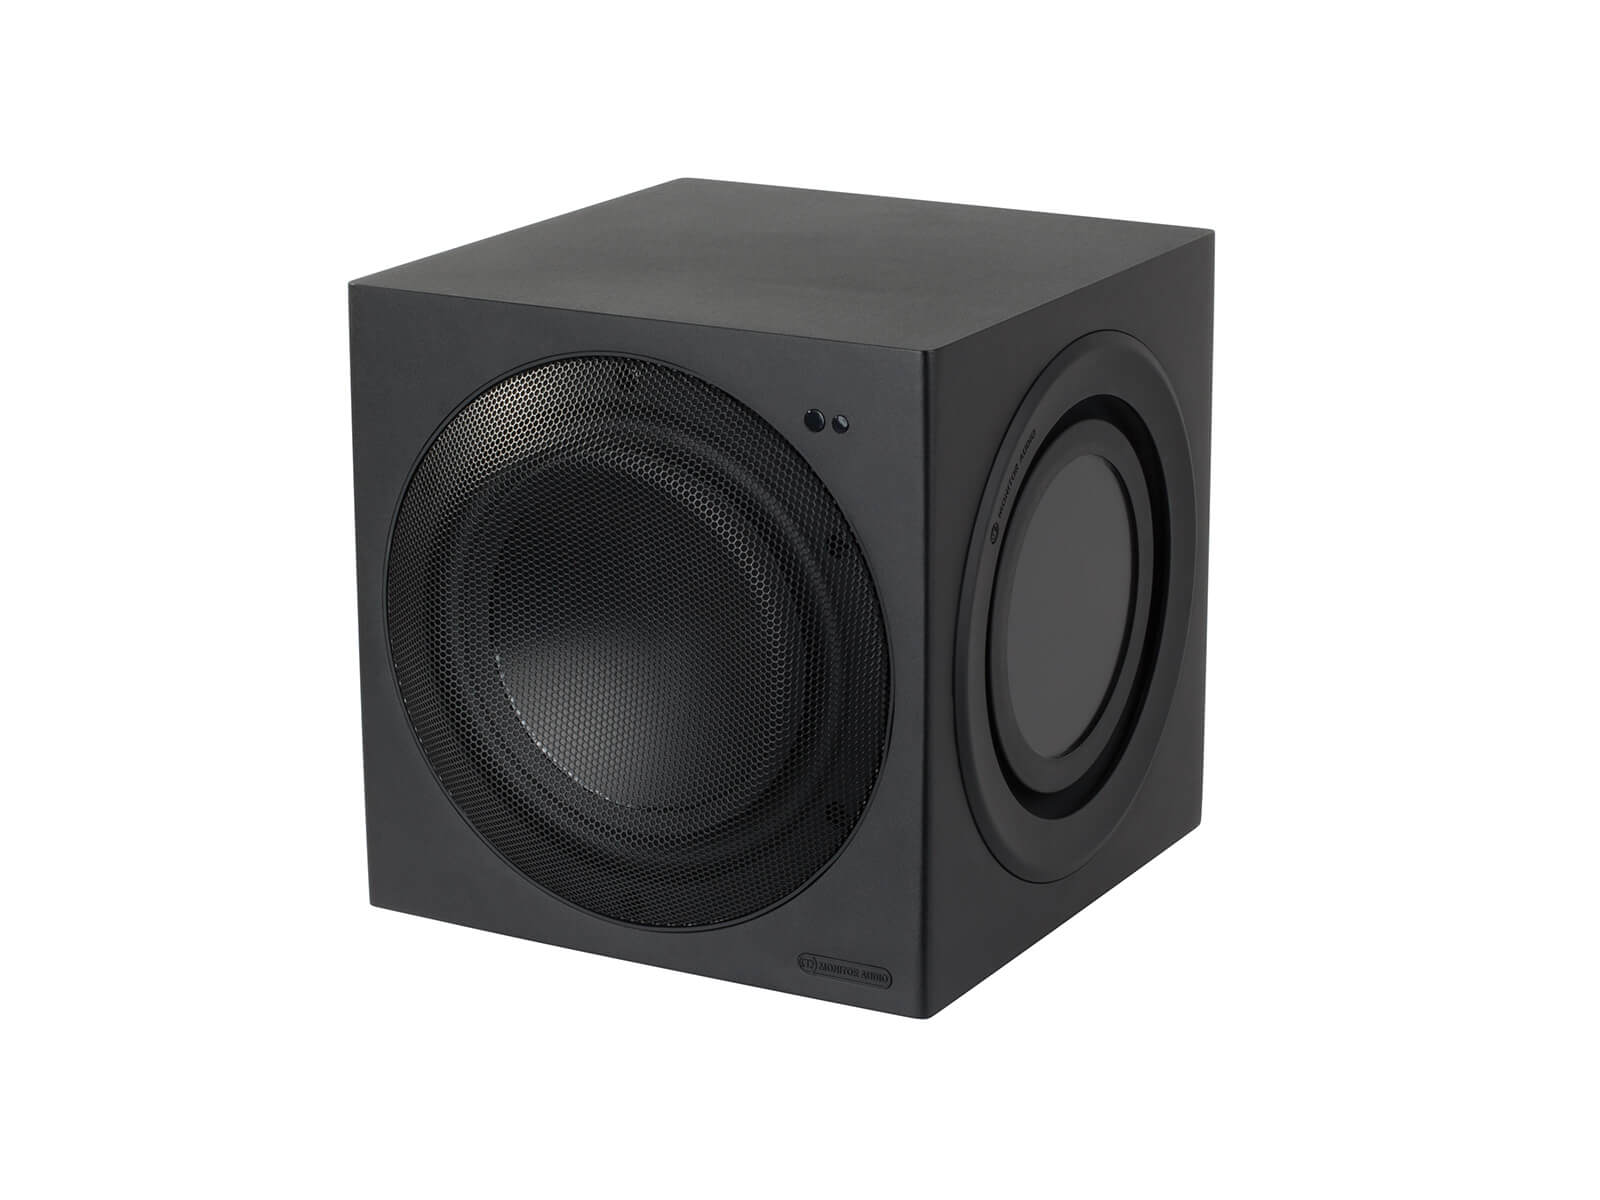 CW8 compact subwoofer, ISO view.